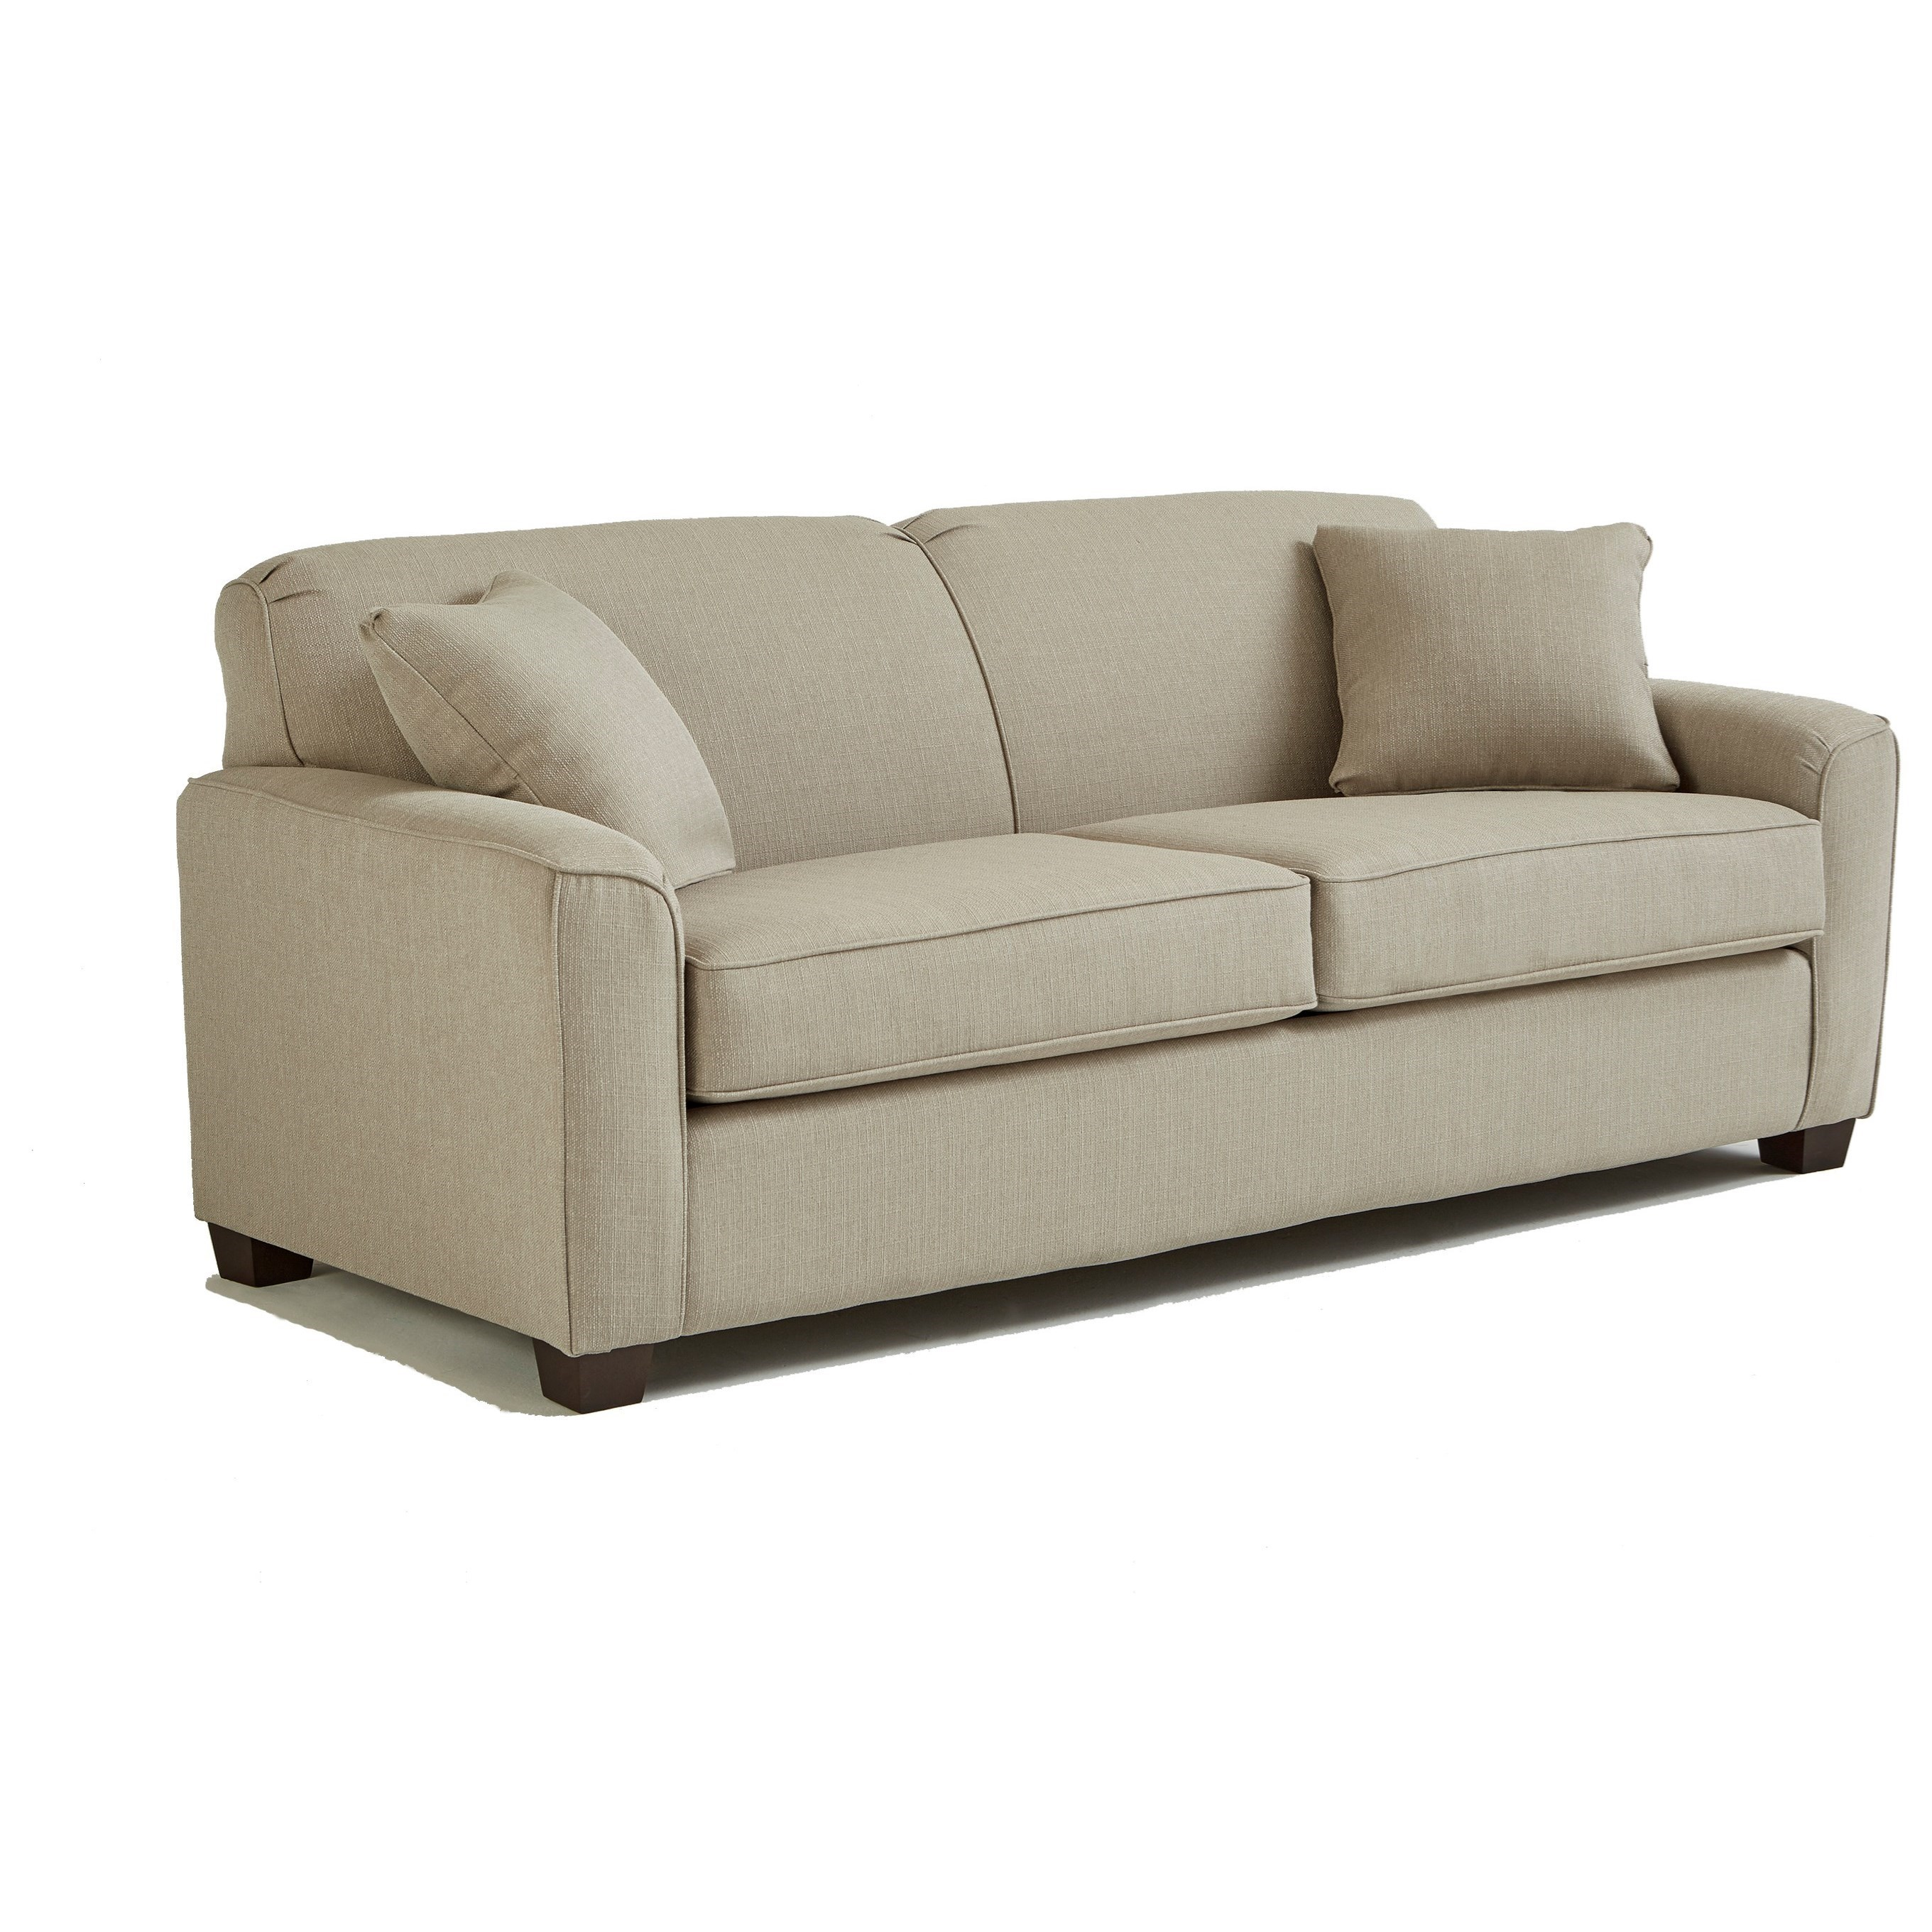 bianca futon sofa bed review grey sleeper with chaise best home furnishings dinah s16qdp contemporary queen dinahqueen